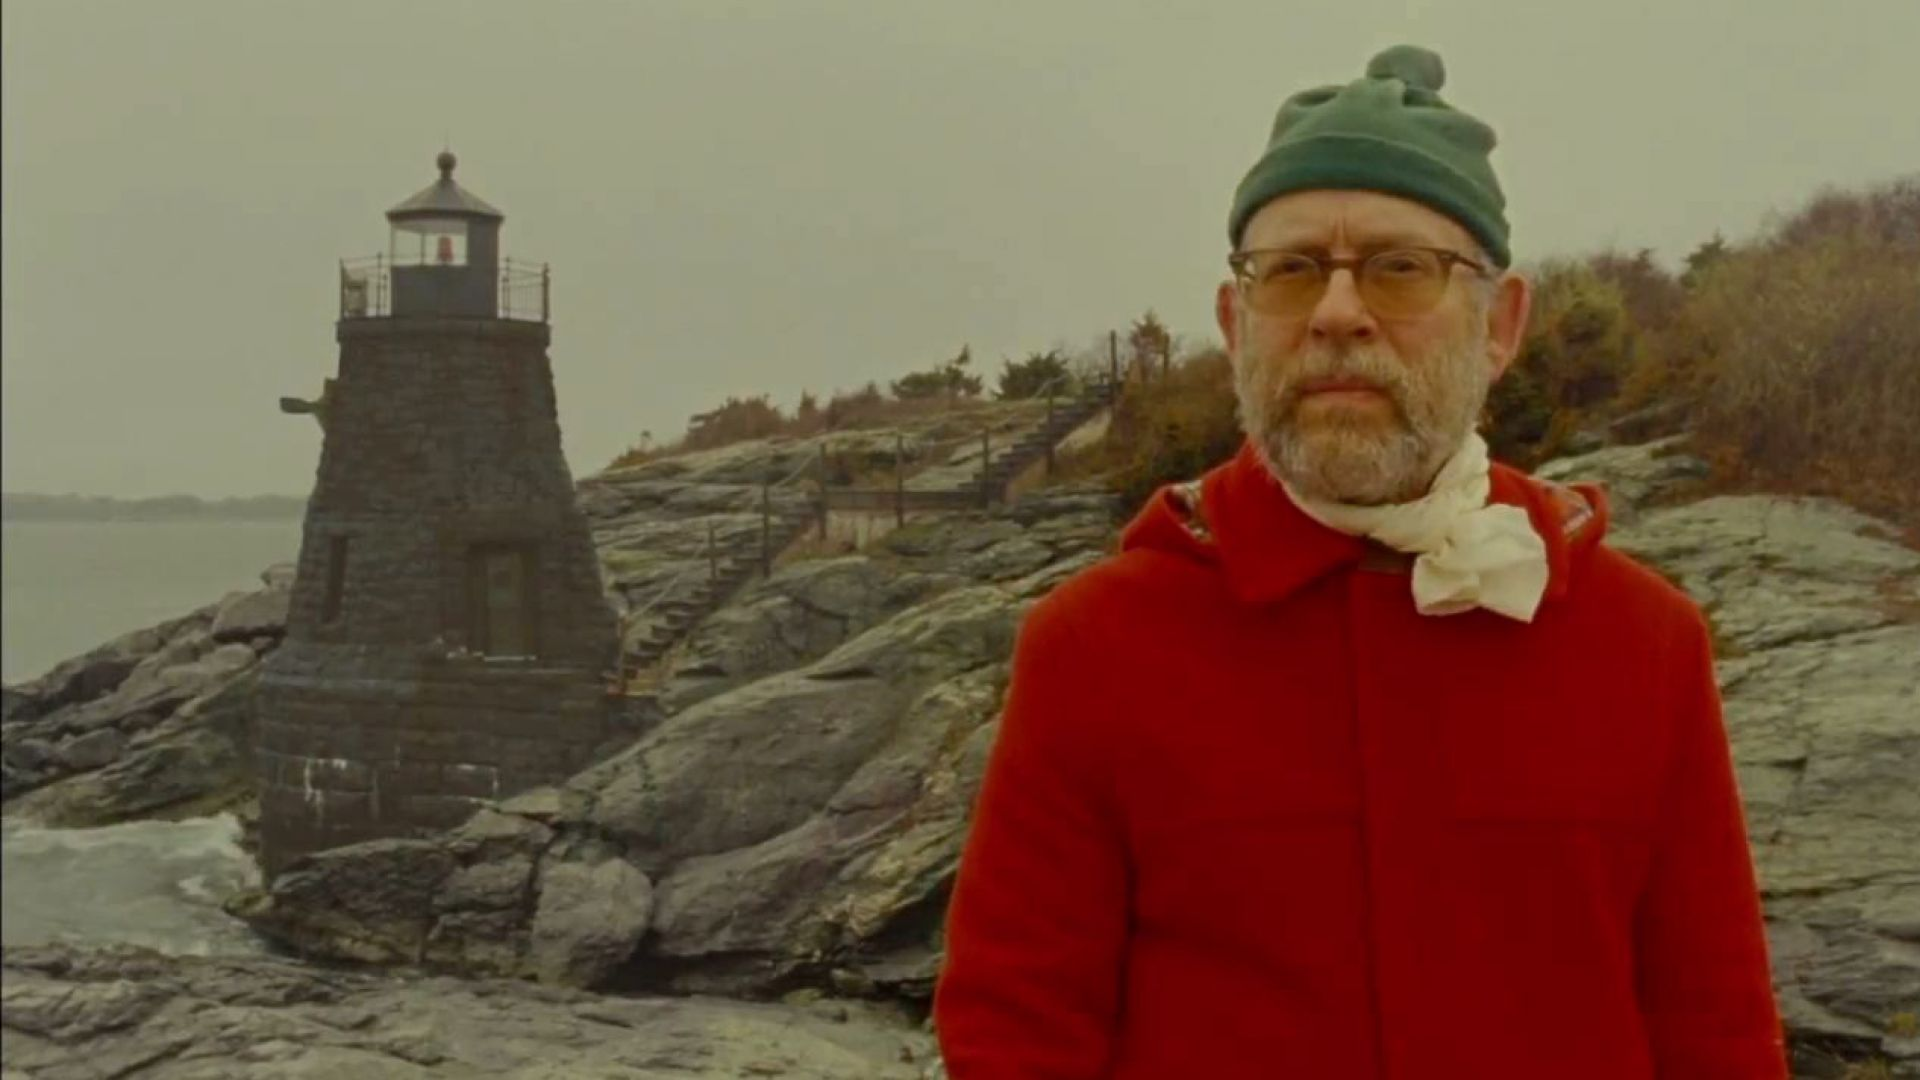 About the island of New Penzance in Moonrise Kingdom